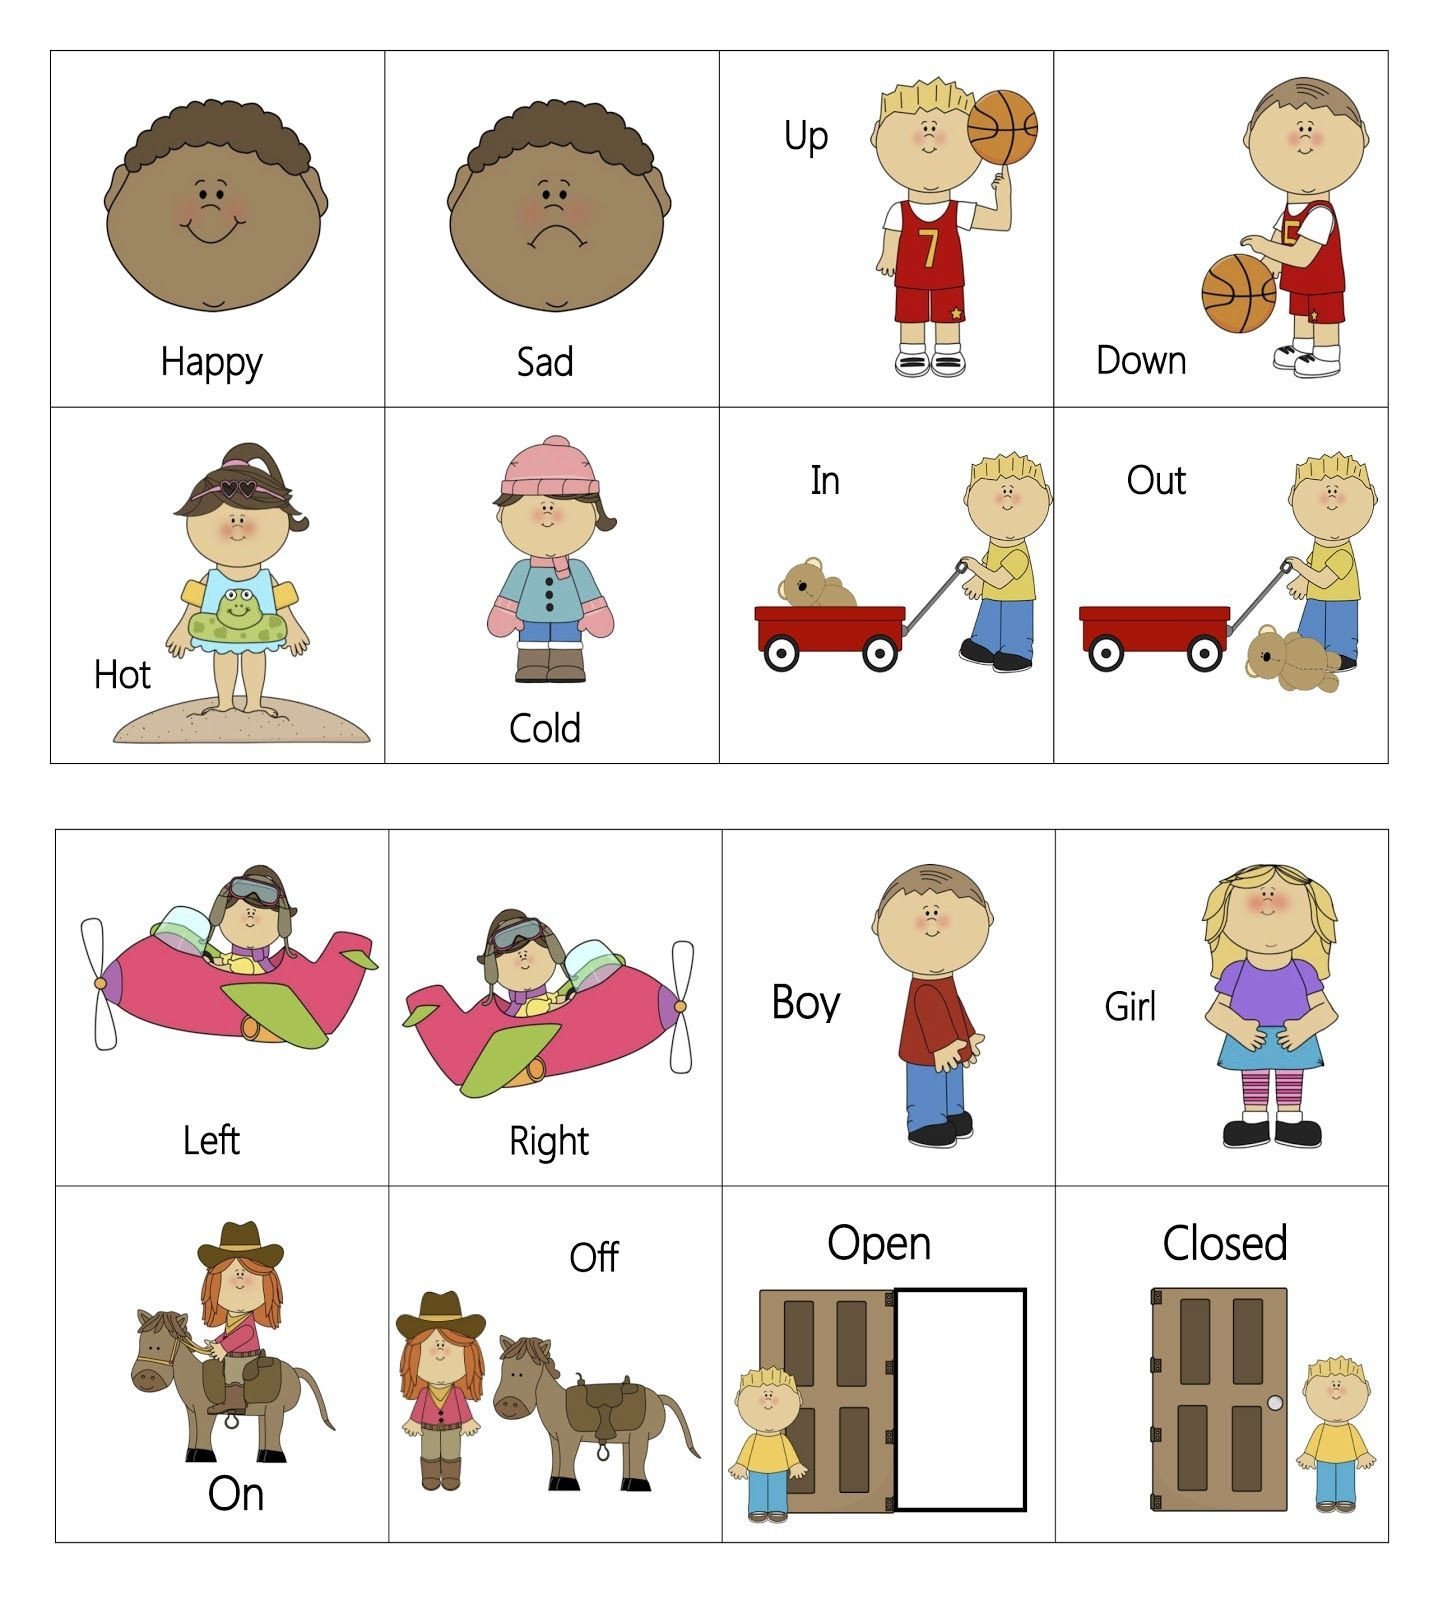 Preschool Opposites Worksheets Free Printable Everyday Opposites Flashcards